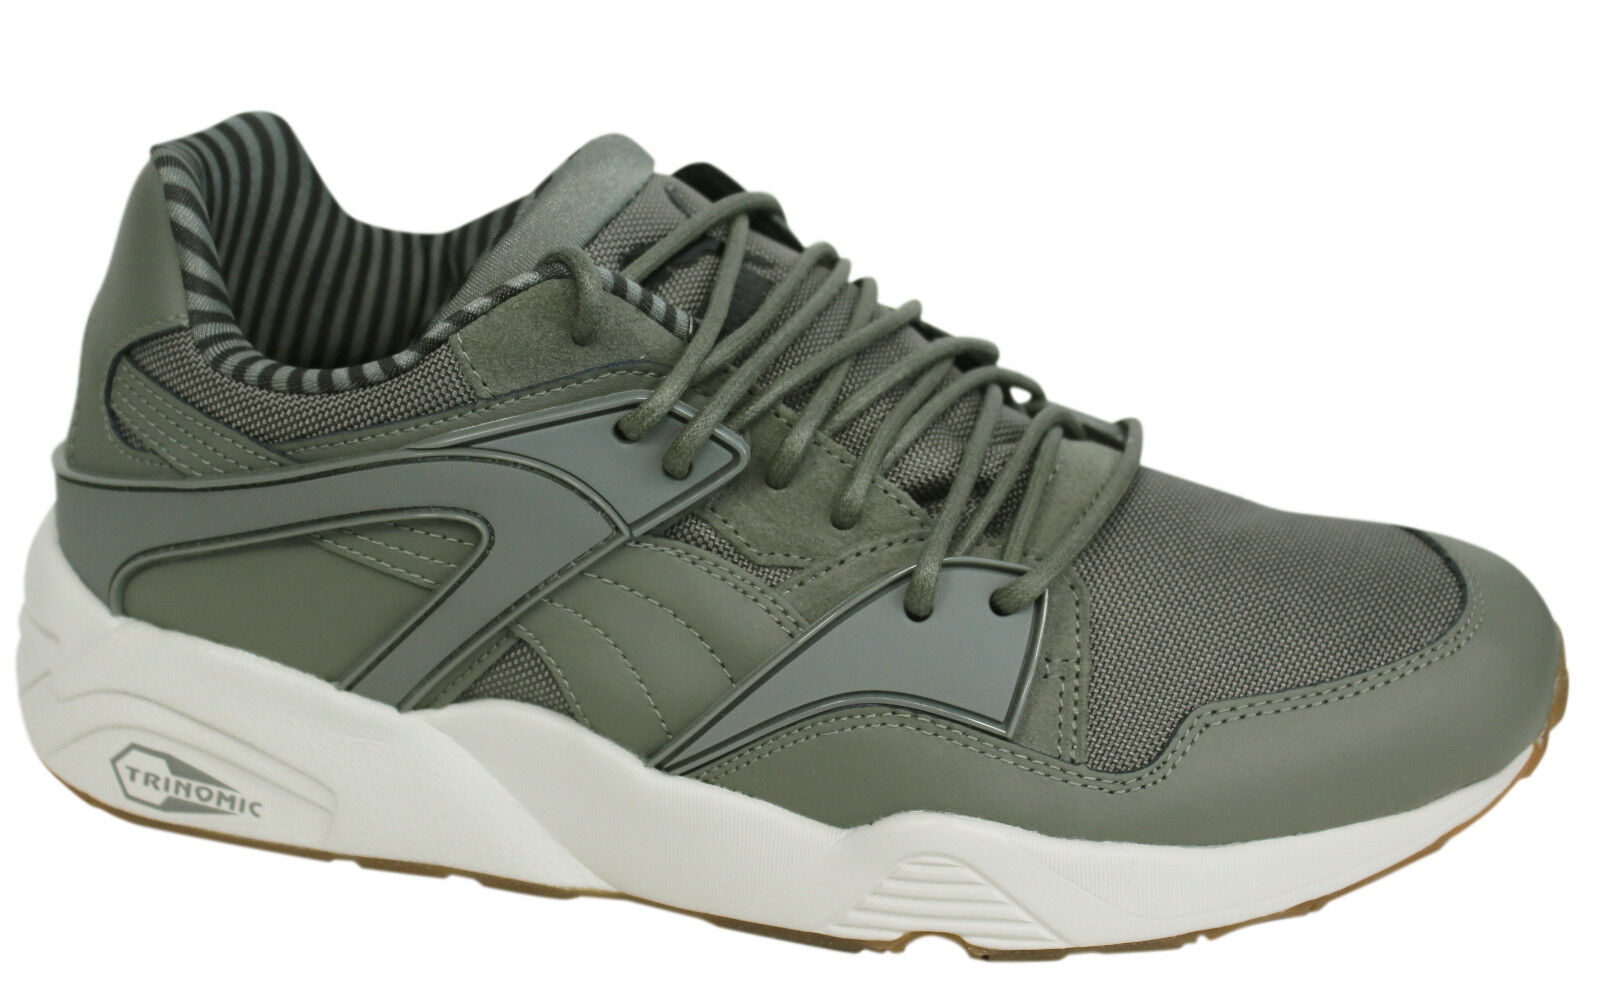 Series Puma Grey 359993 Citi Mens Blaze Trinomic Trainers Up About 02 B83a Details Lace hdQstr